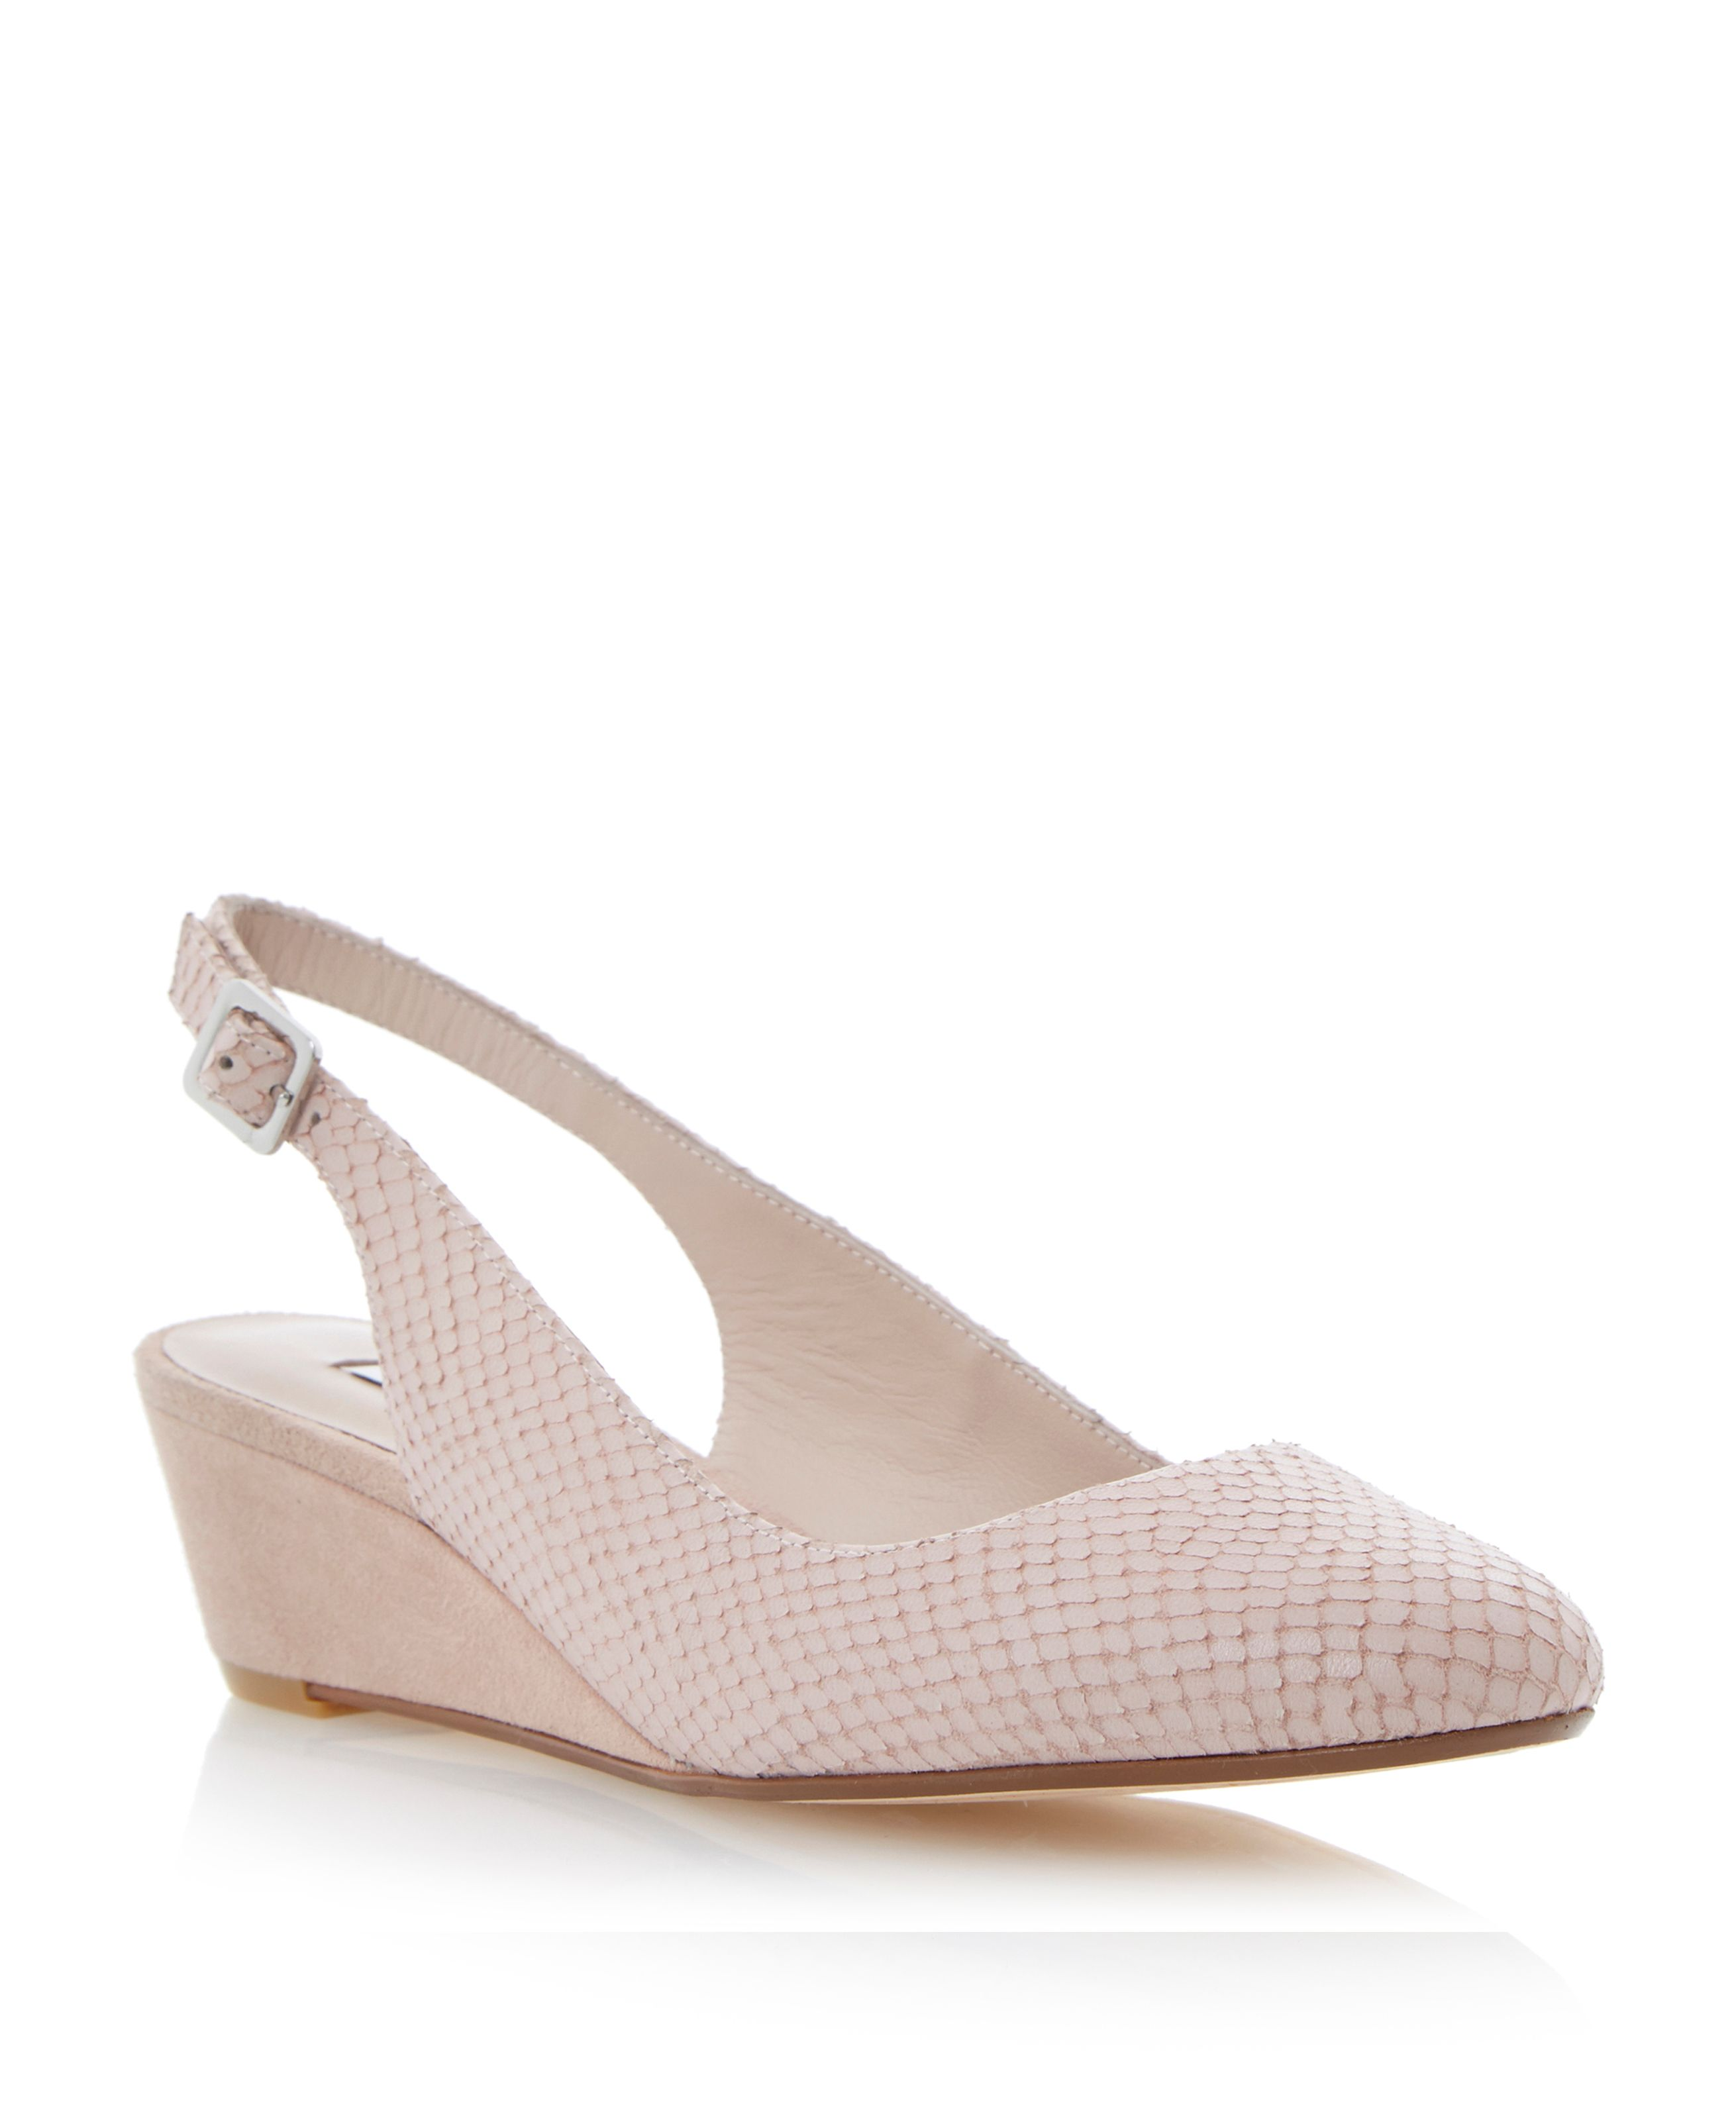 Candie reptile almond toe wedge court shoes